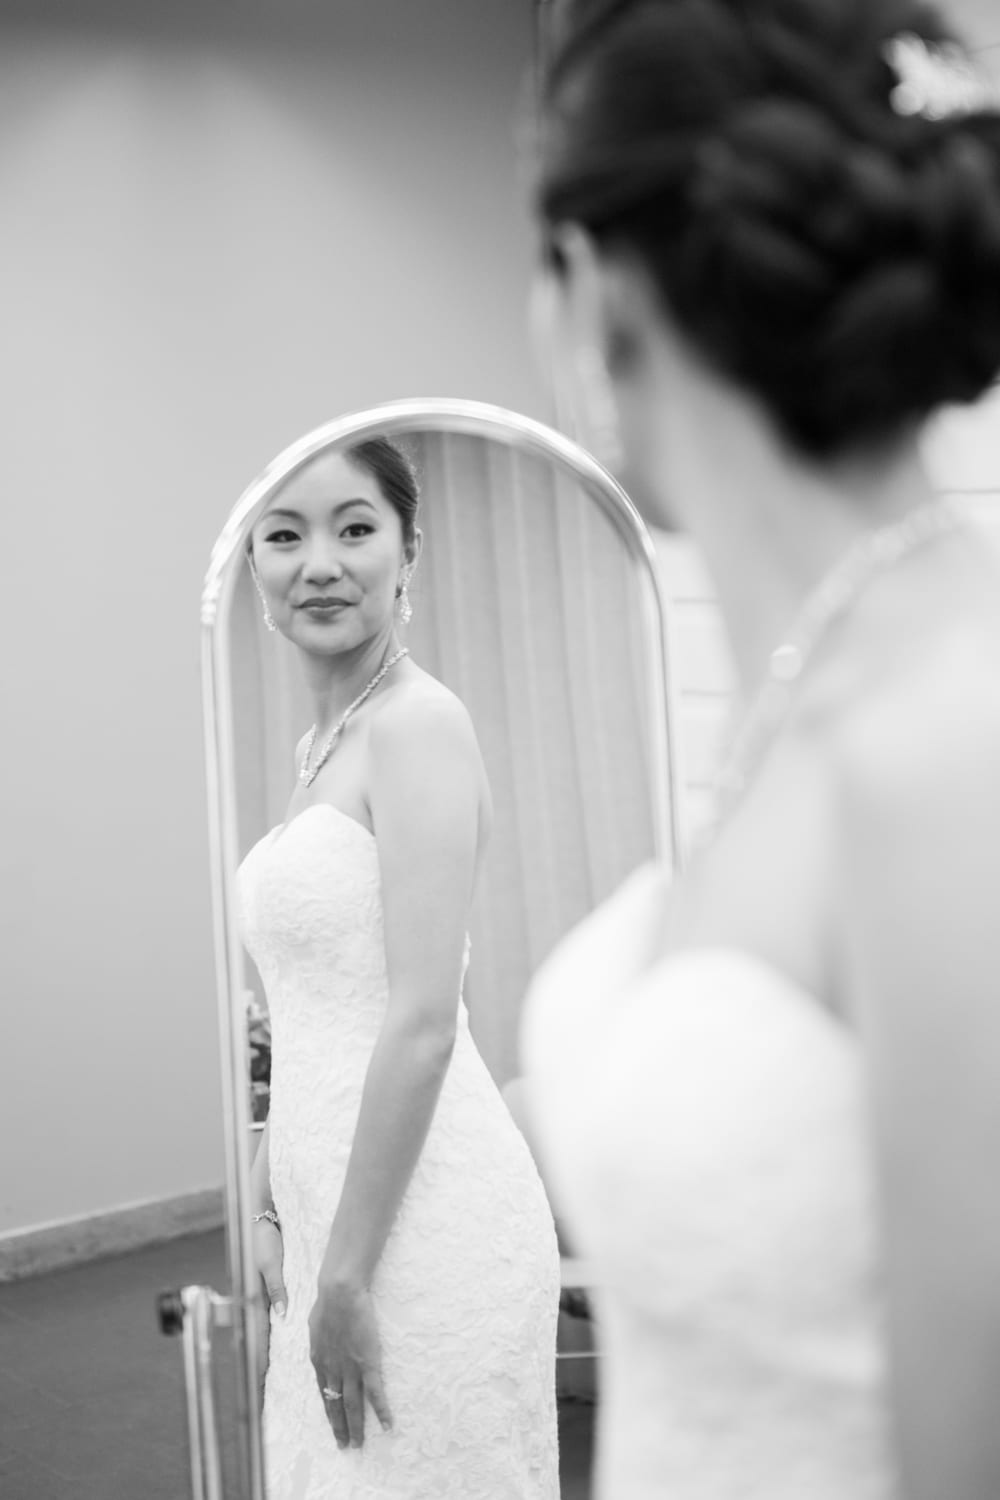 Bride-Mirror-Black-White-B&W-Zsuzsi-Pal-Photography-Wedding